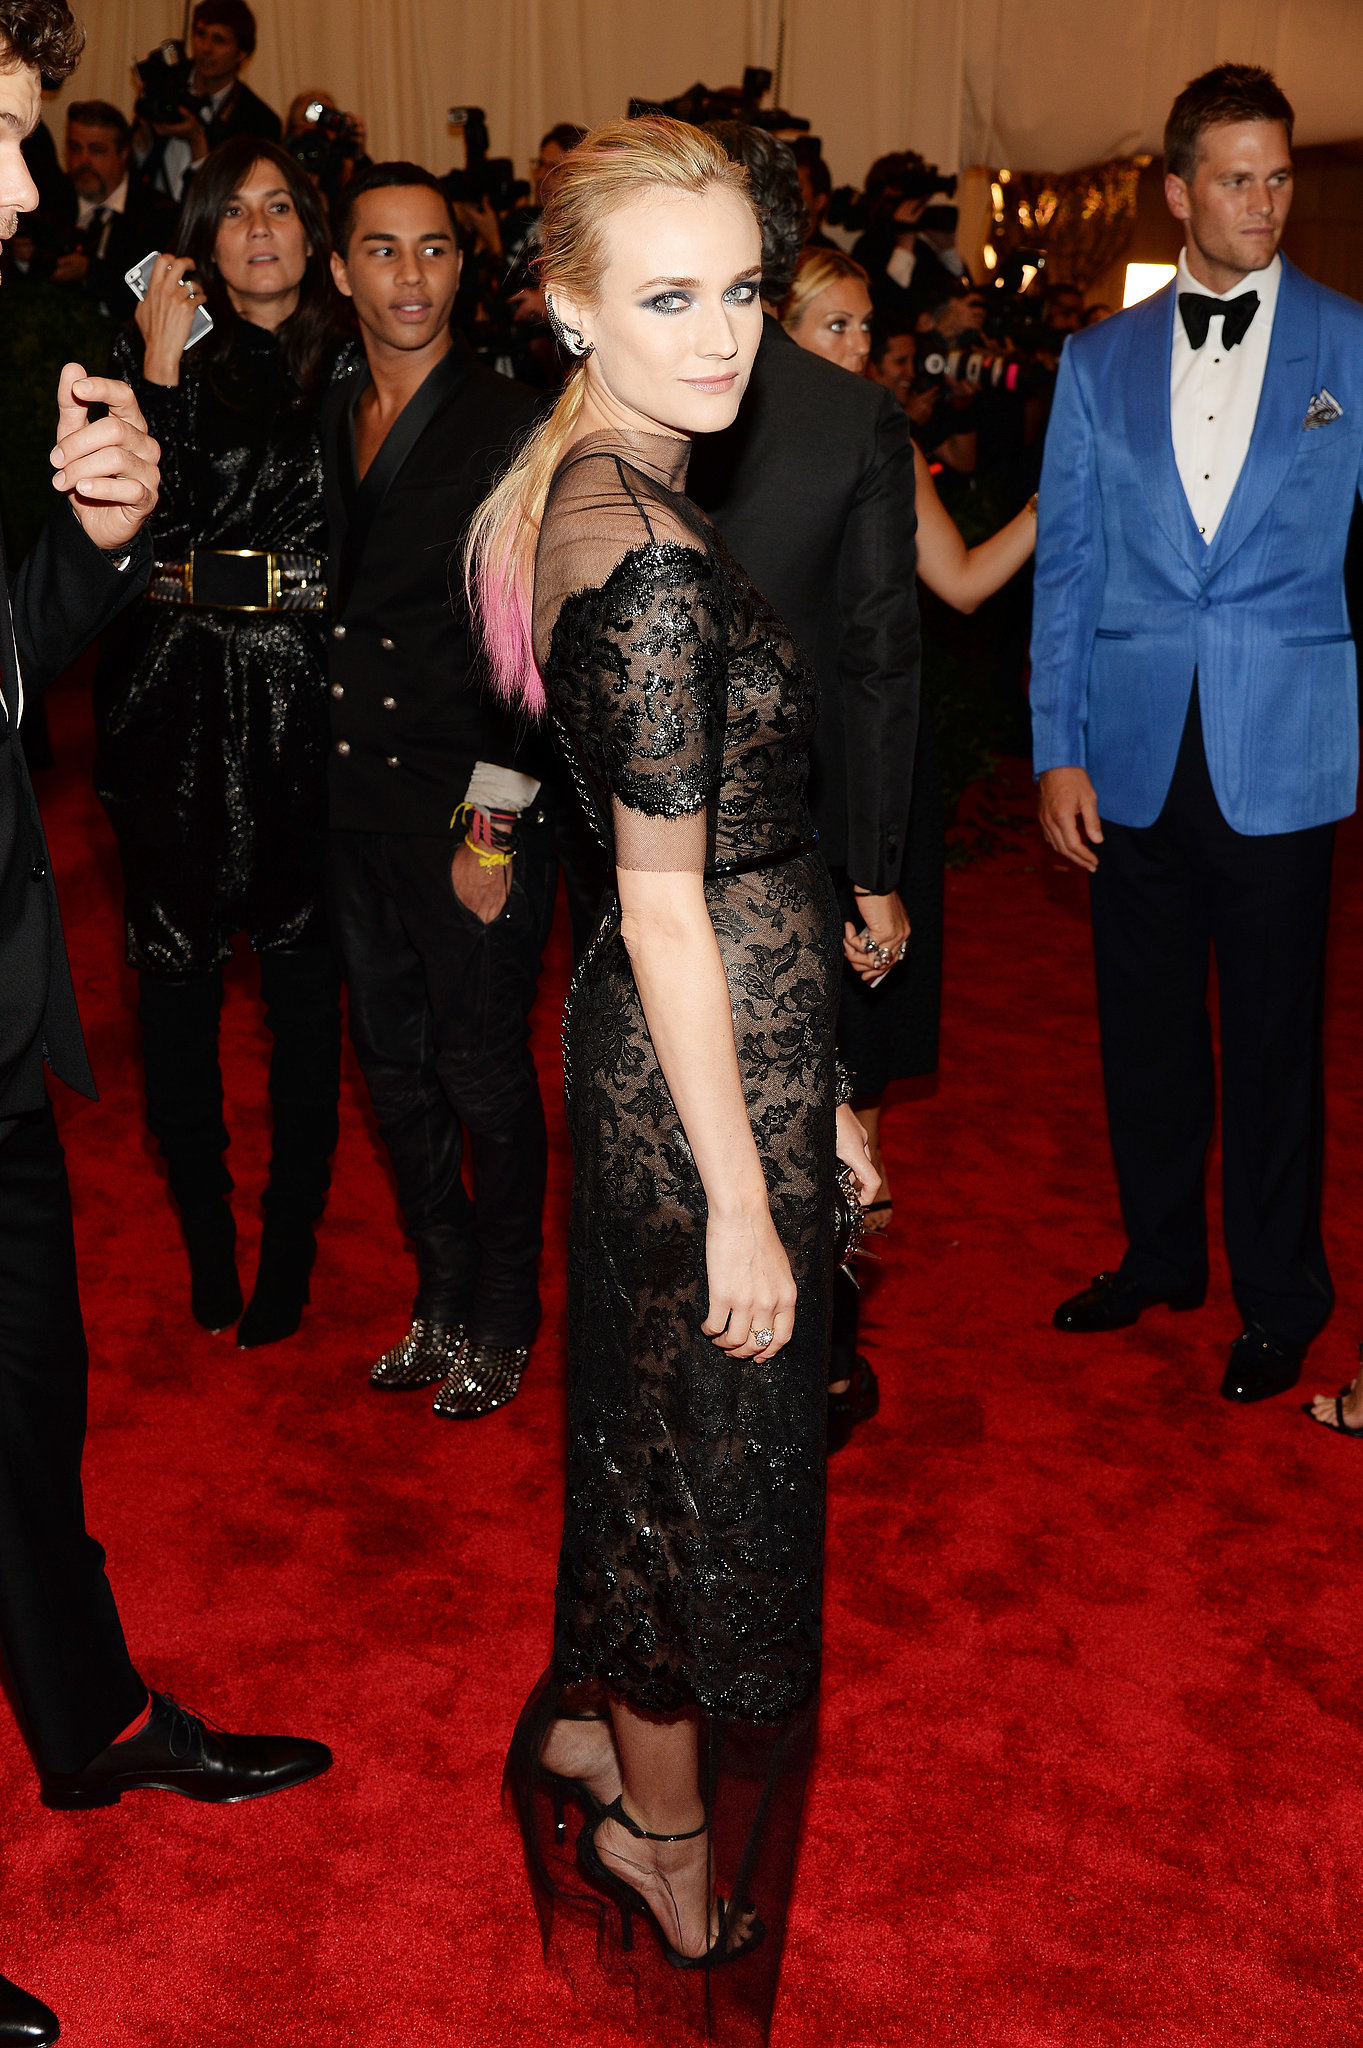 Leave it to Diane to take punk chic to new heights. At the 2013 Met Gala, the blond stunner owned the red carpet in a shimmering sheer-and-lace Chanel confection, dip-dyed pink strands, and a sultry smokey eye.